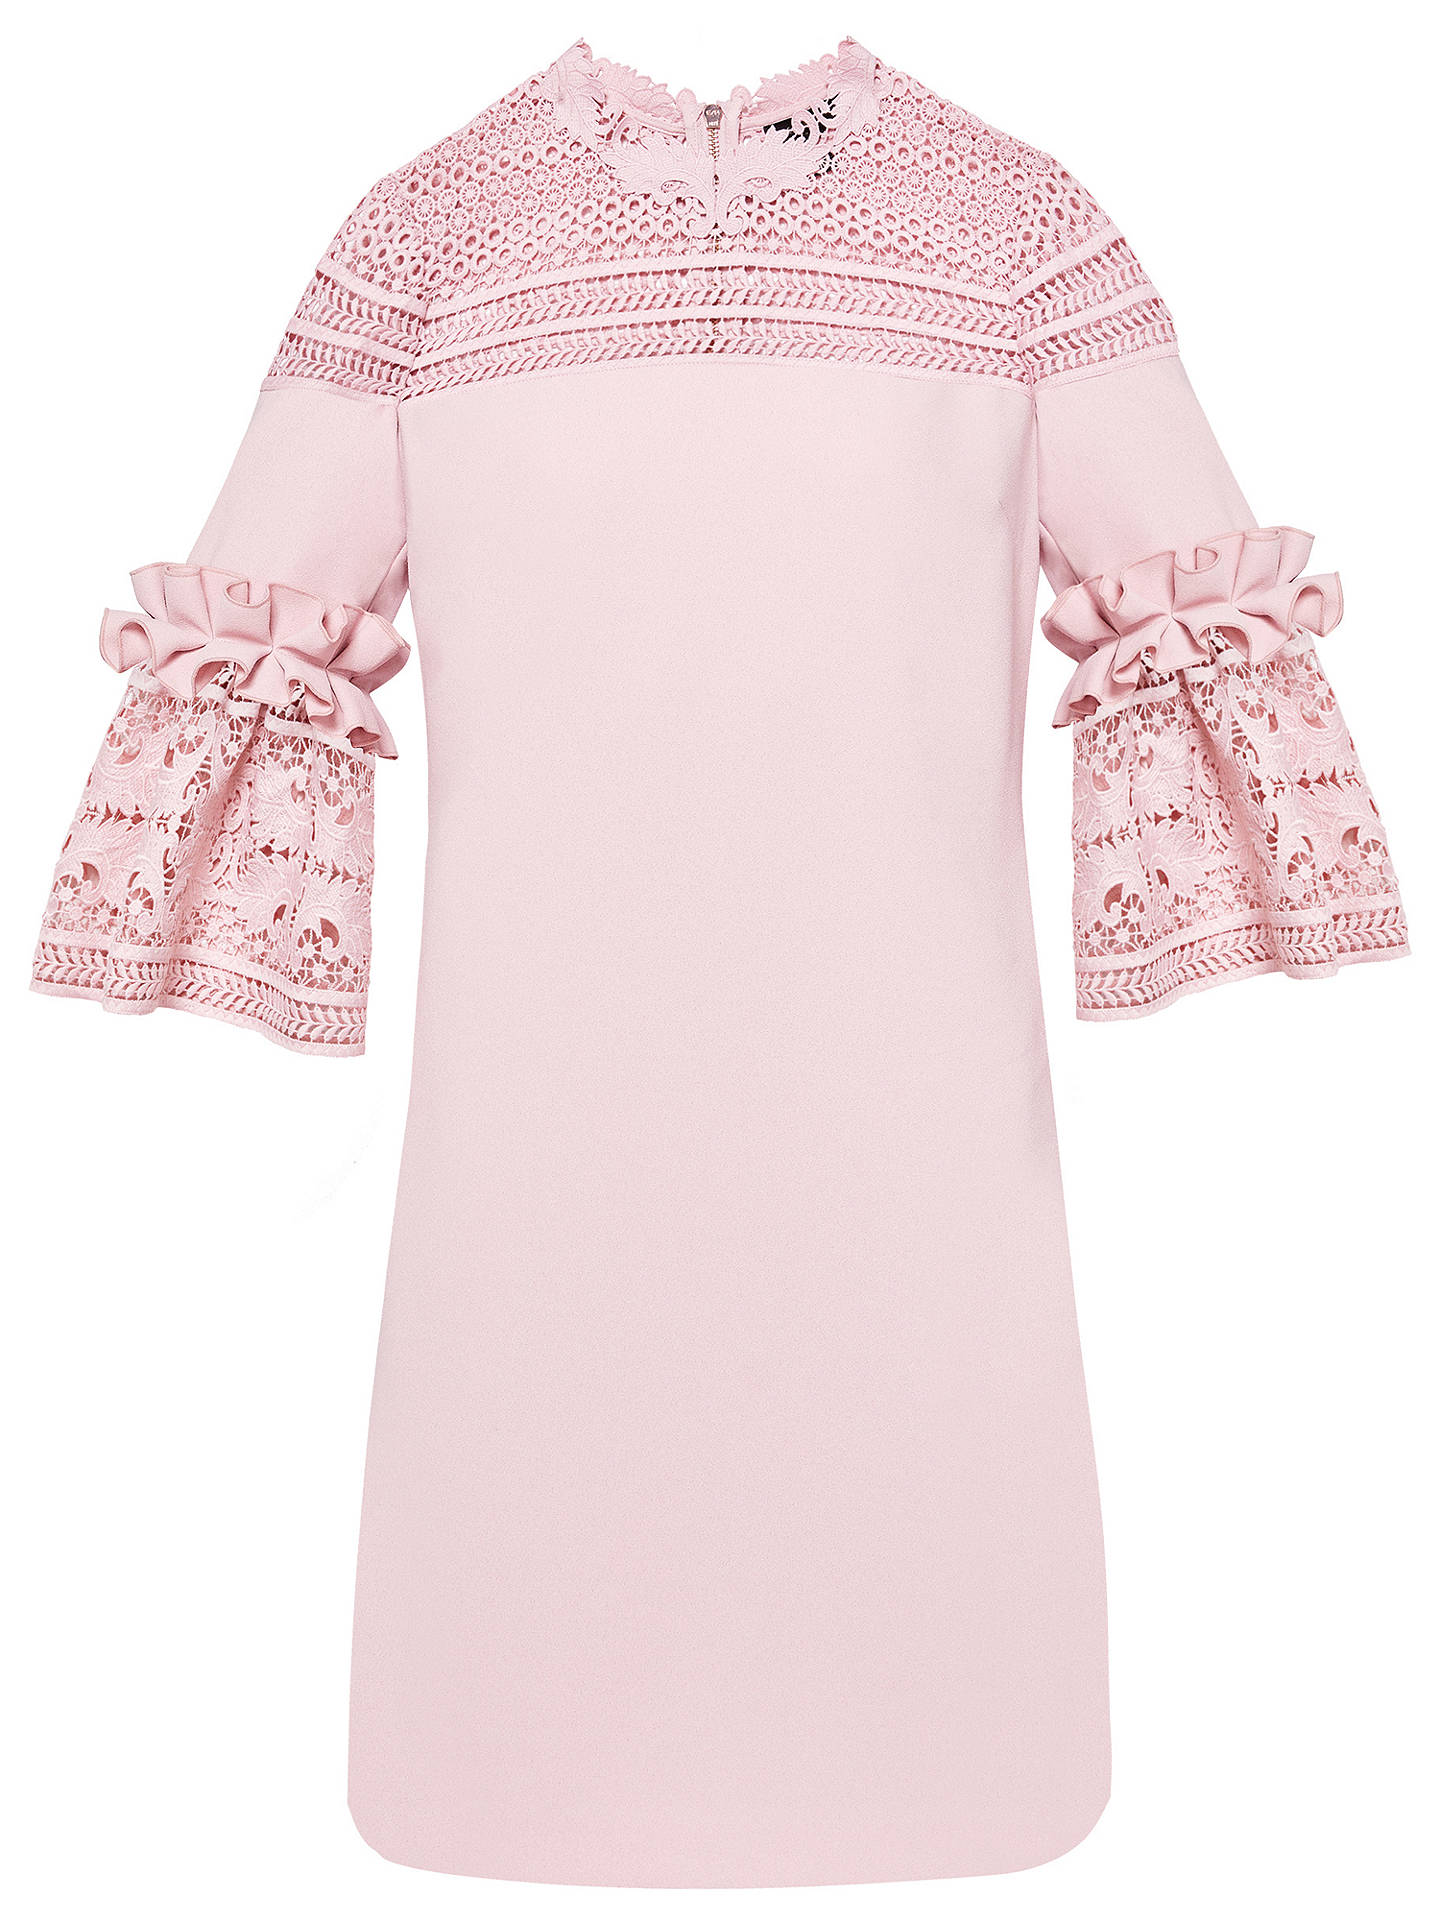 c48f38ab0 ... Buy Ted Baker Lucila Lace Bell Sleeved Tunic Dress